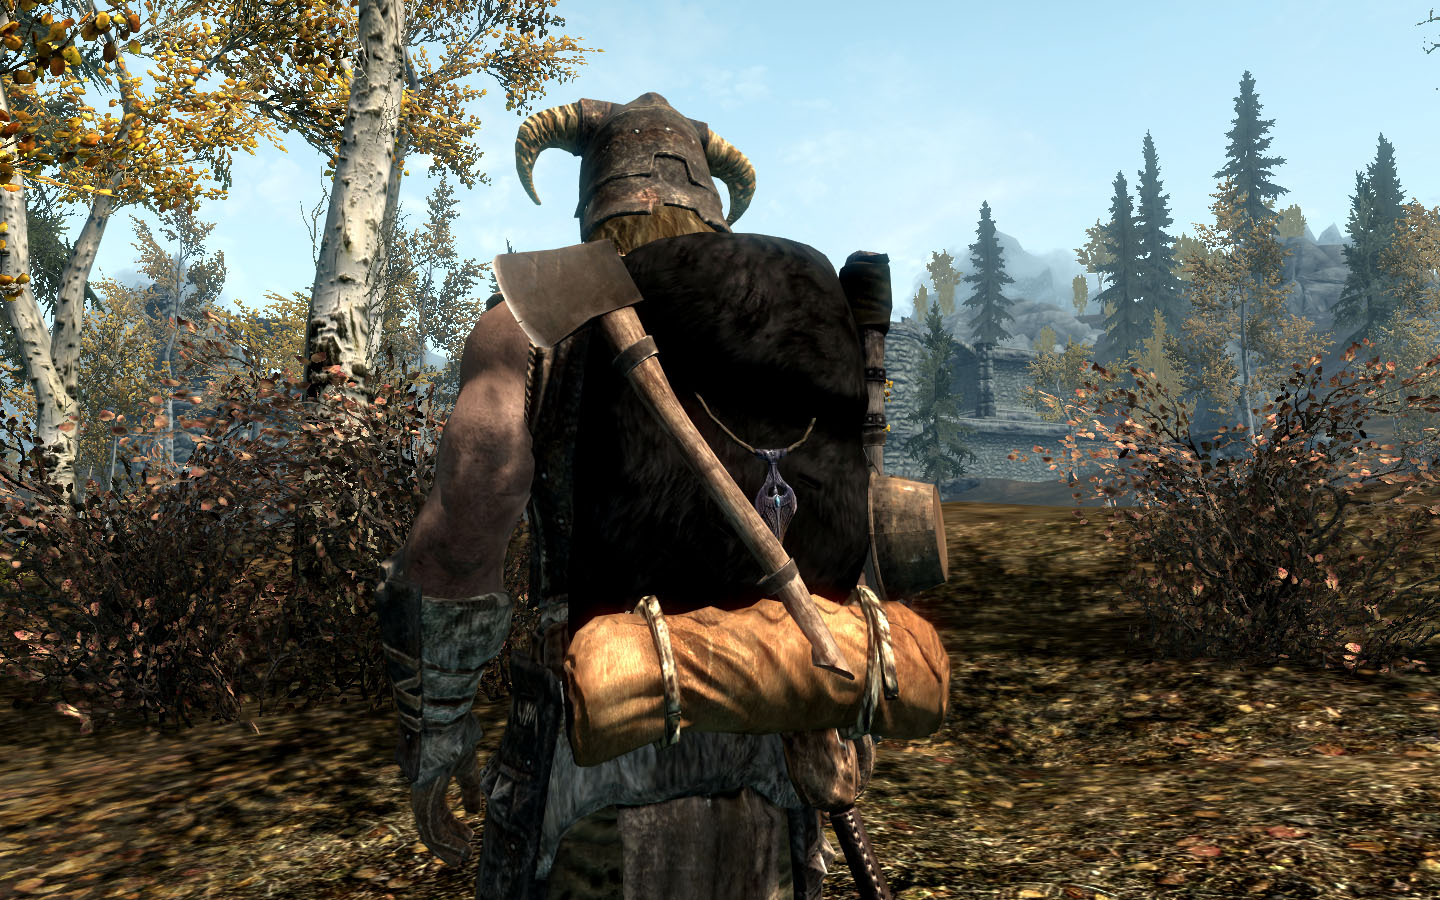 http://skyrimsurvival.com/wp/wp-content/uploads/2015/04/backpack.jpg